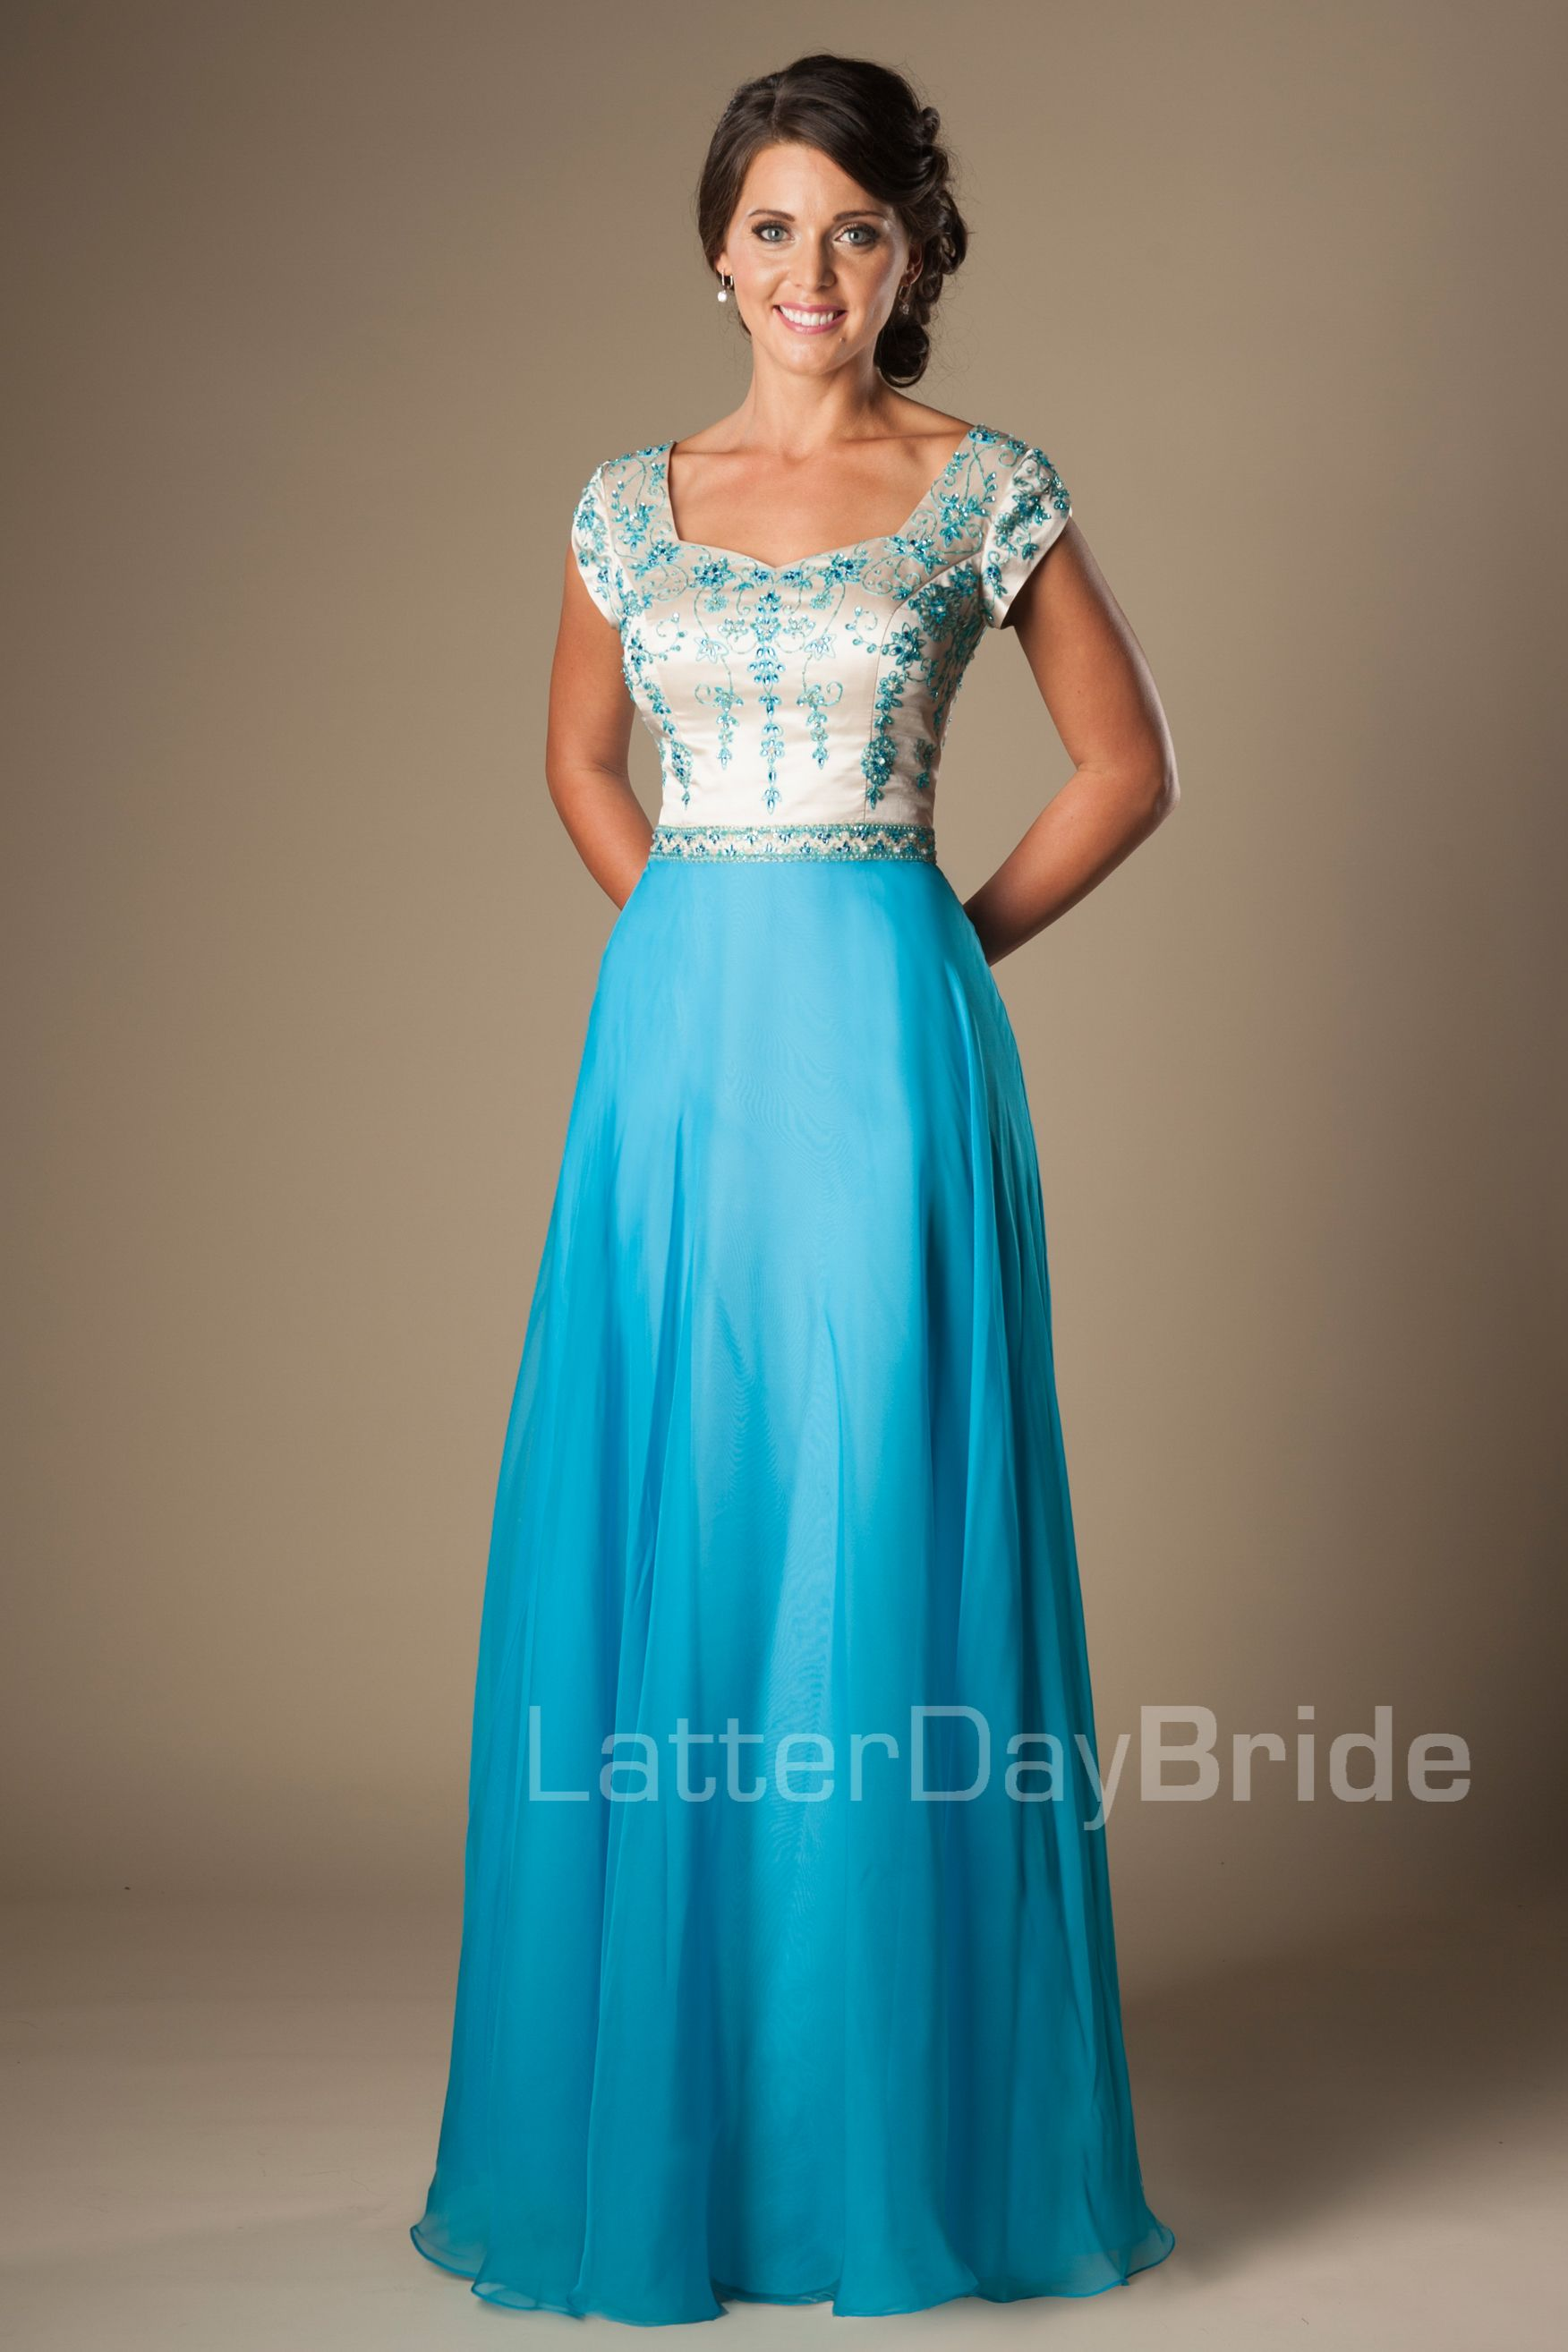 modest-prom-dress-dabney-front.jpg | Prom Excitement!!! | Pinterest ...